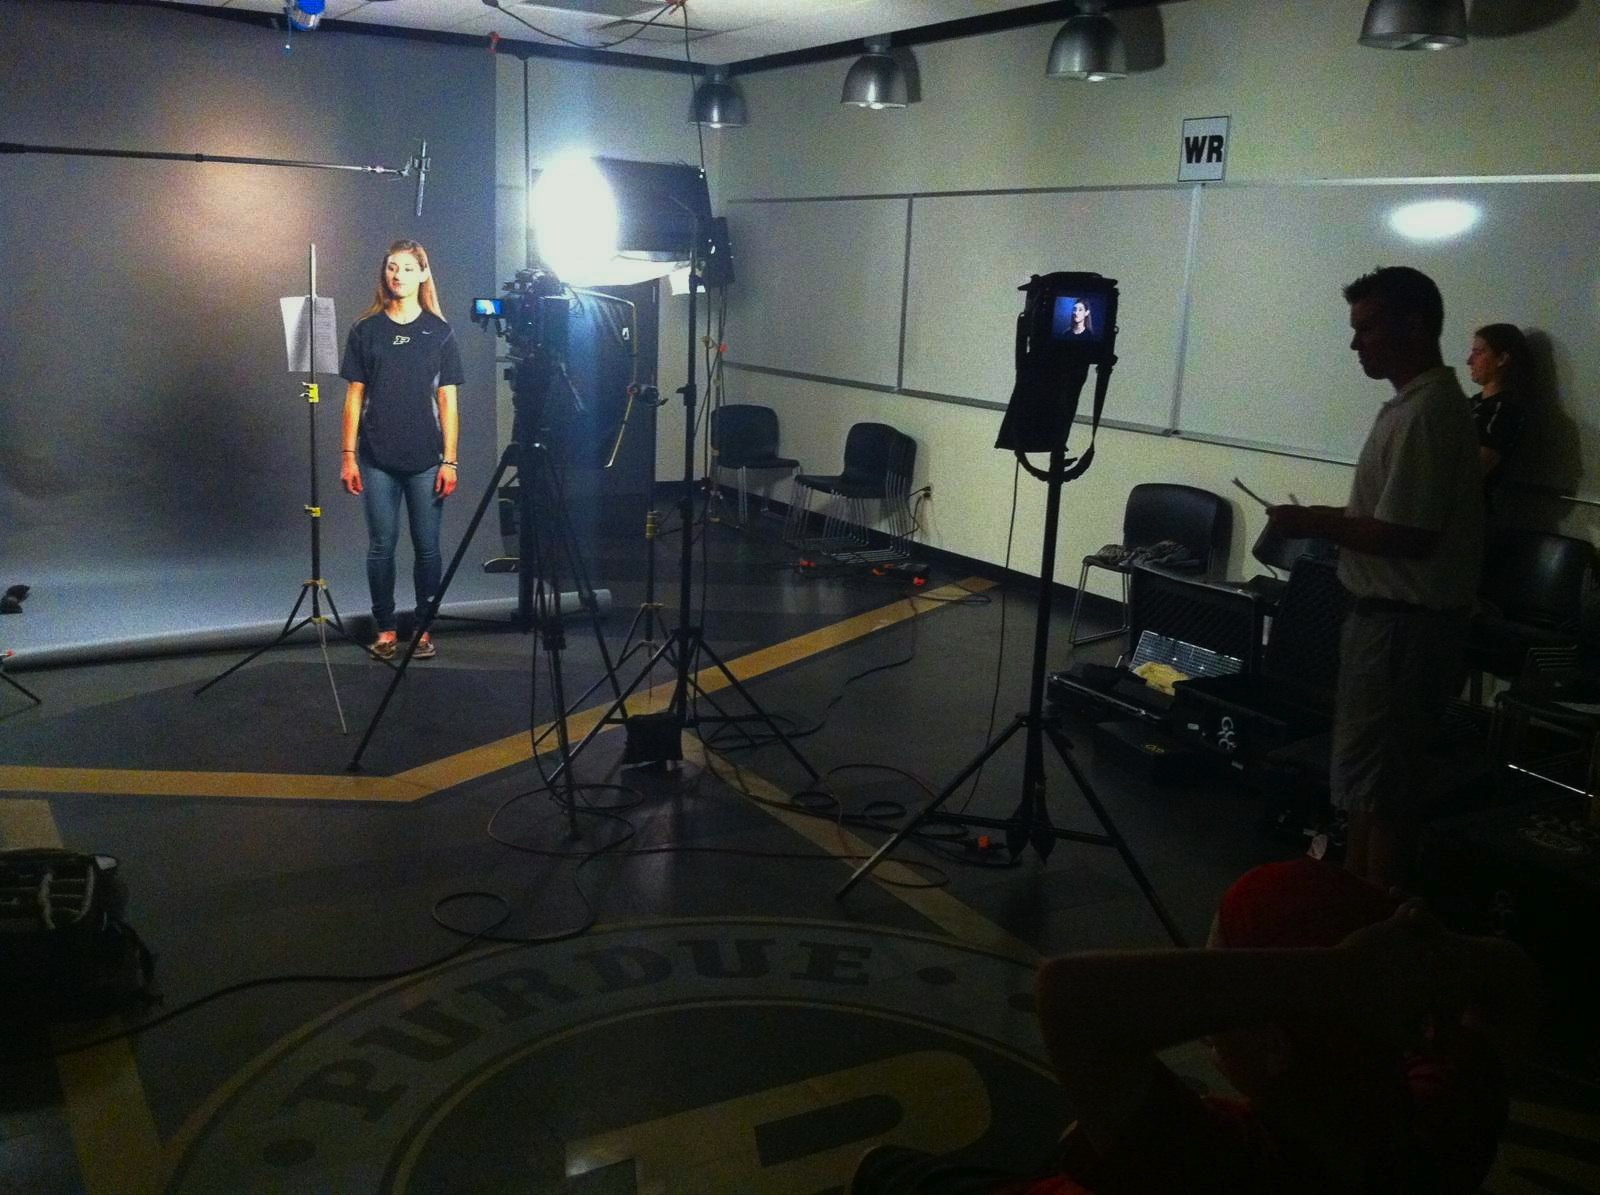 Purdue Chicago & Nashville Crews Shoot in Indiana for Big Ten Network